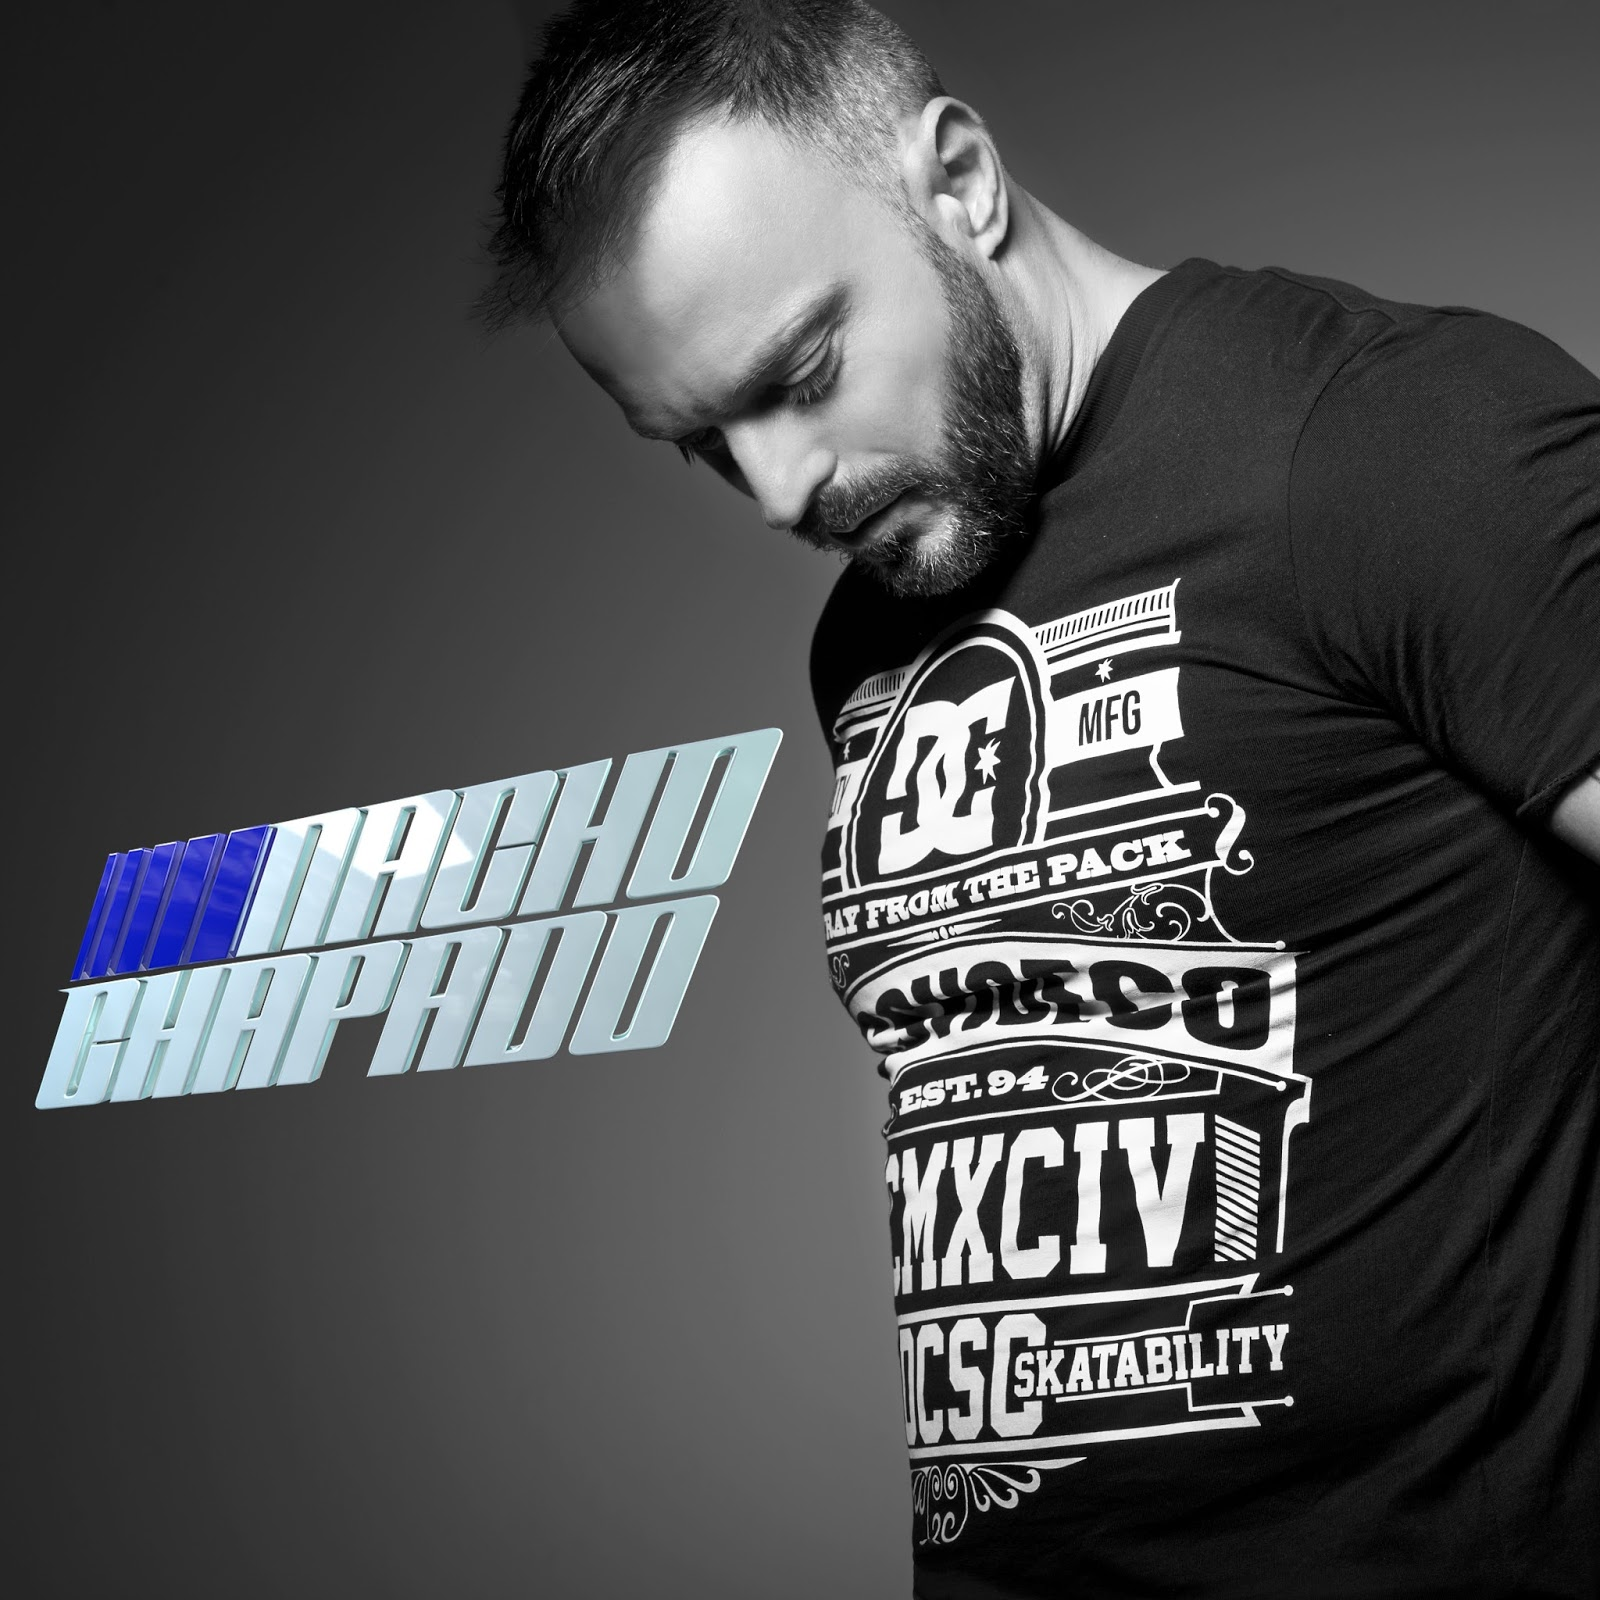 DJ NACHO CHAPADO - NACHO CHAPADO IN SESSION (NOVEMBER 2015 PODCAST)